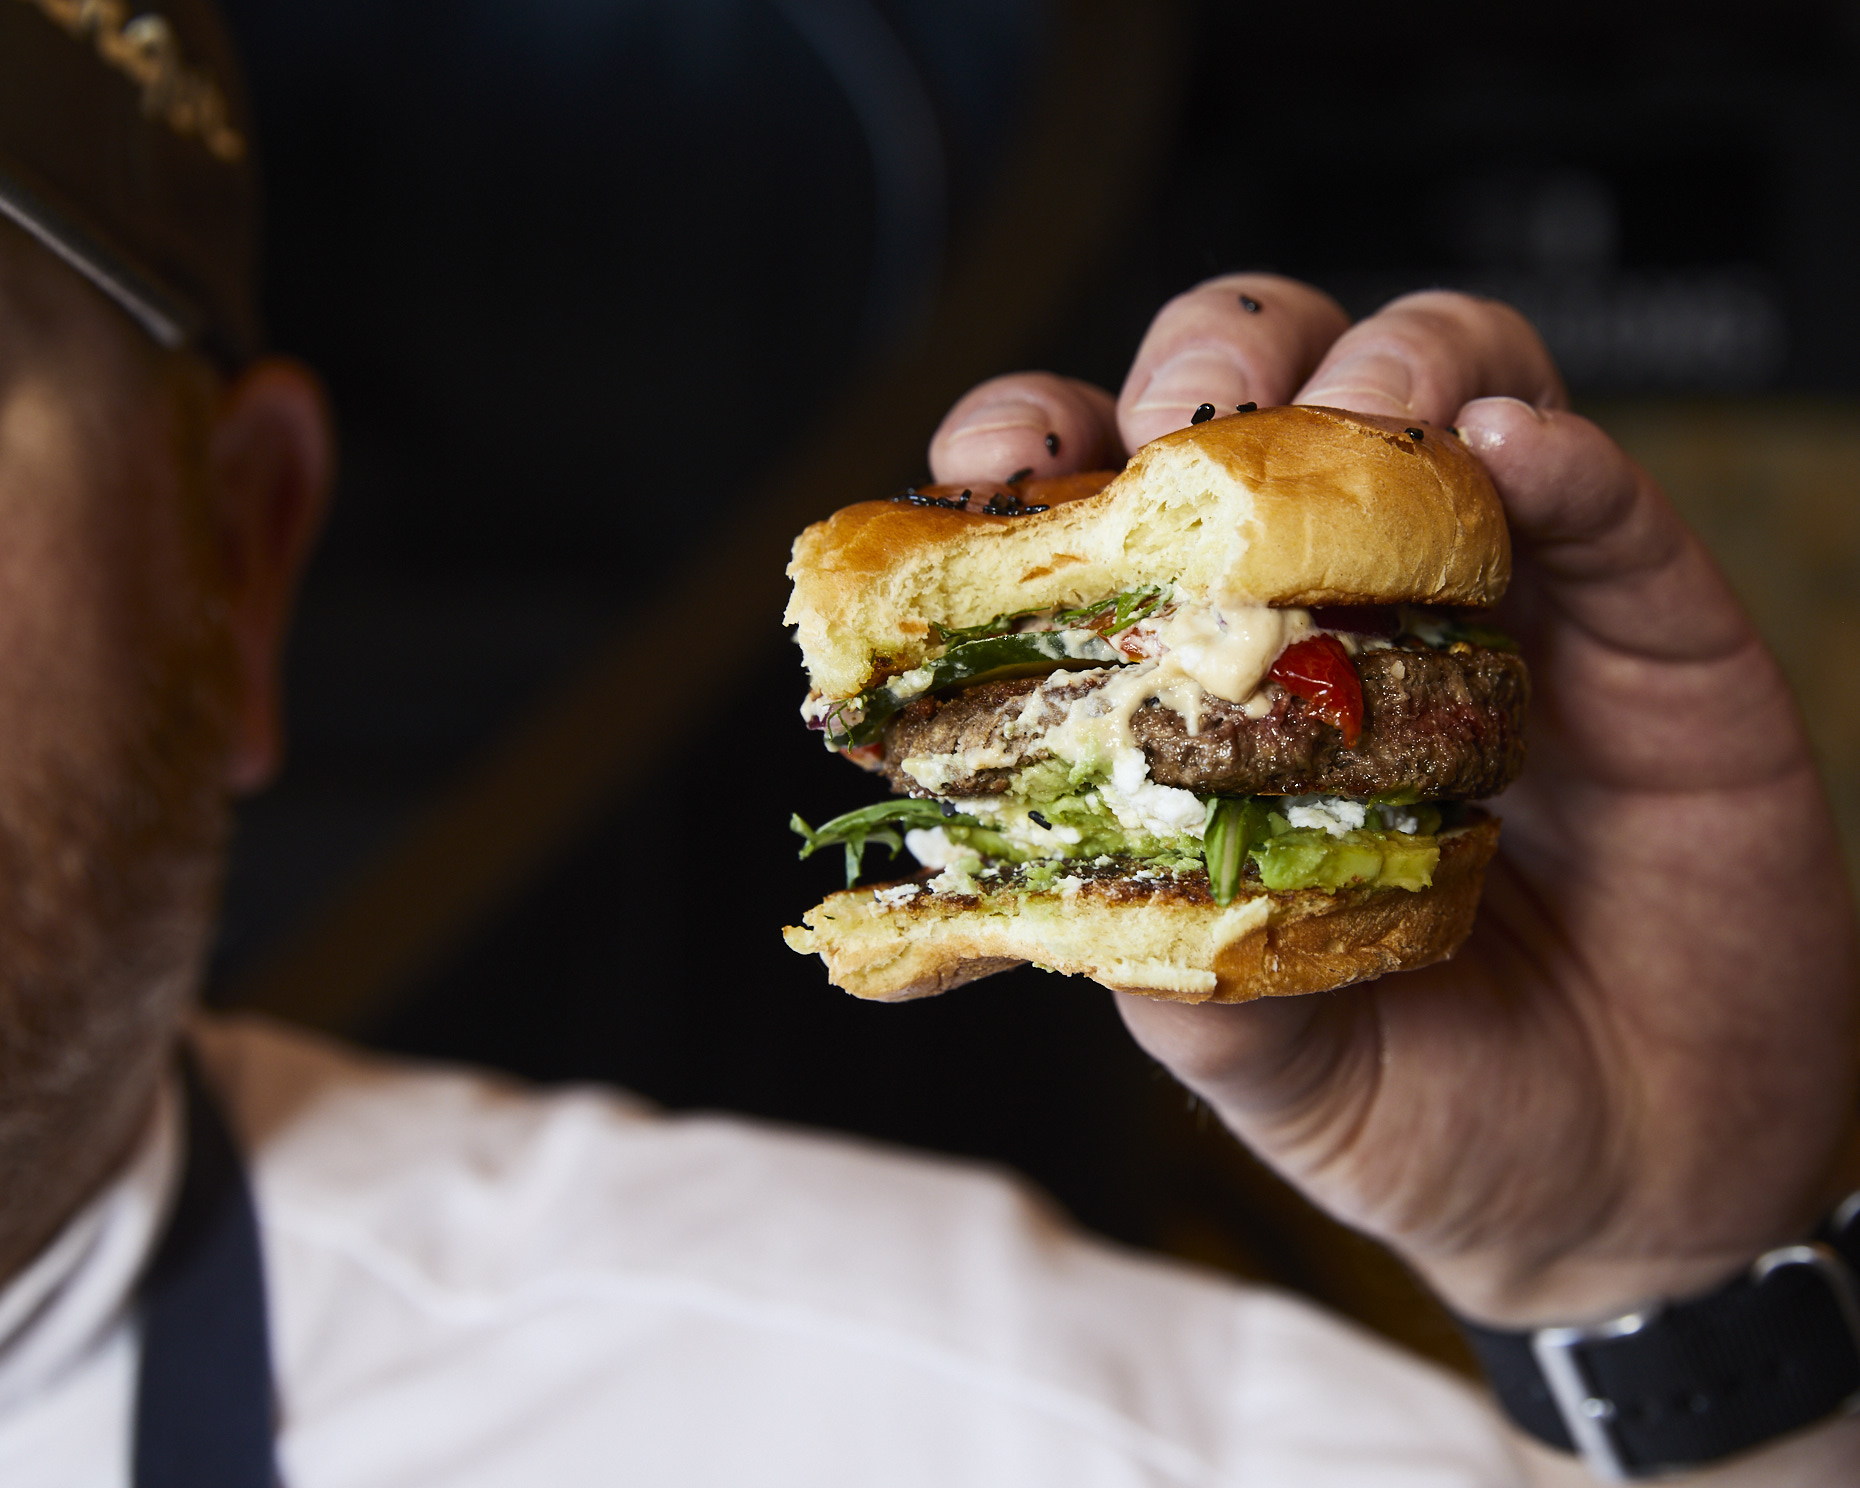 171005_JF_IMPOSSIBLE_FOODS_CHEF_PORTRAIT_229